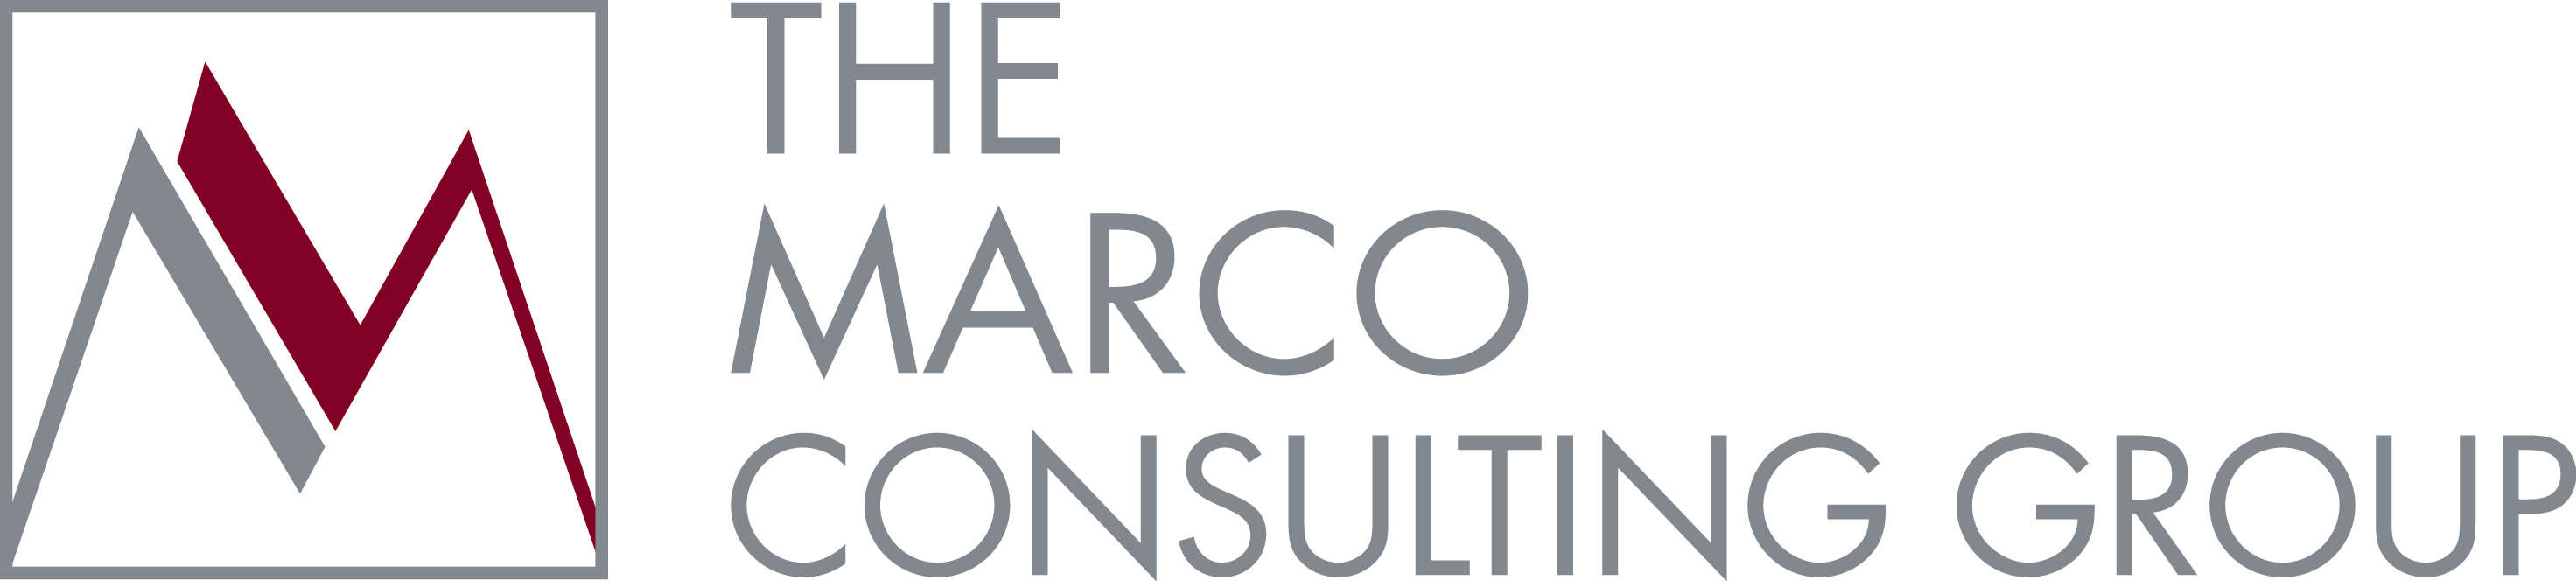 Marco Consulting Group Logo